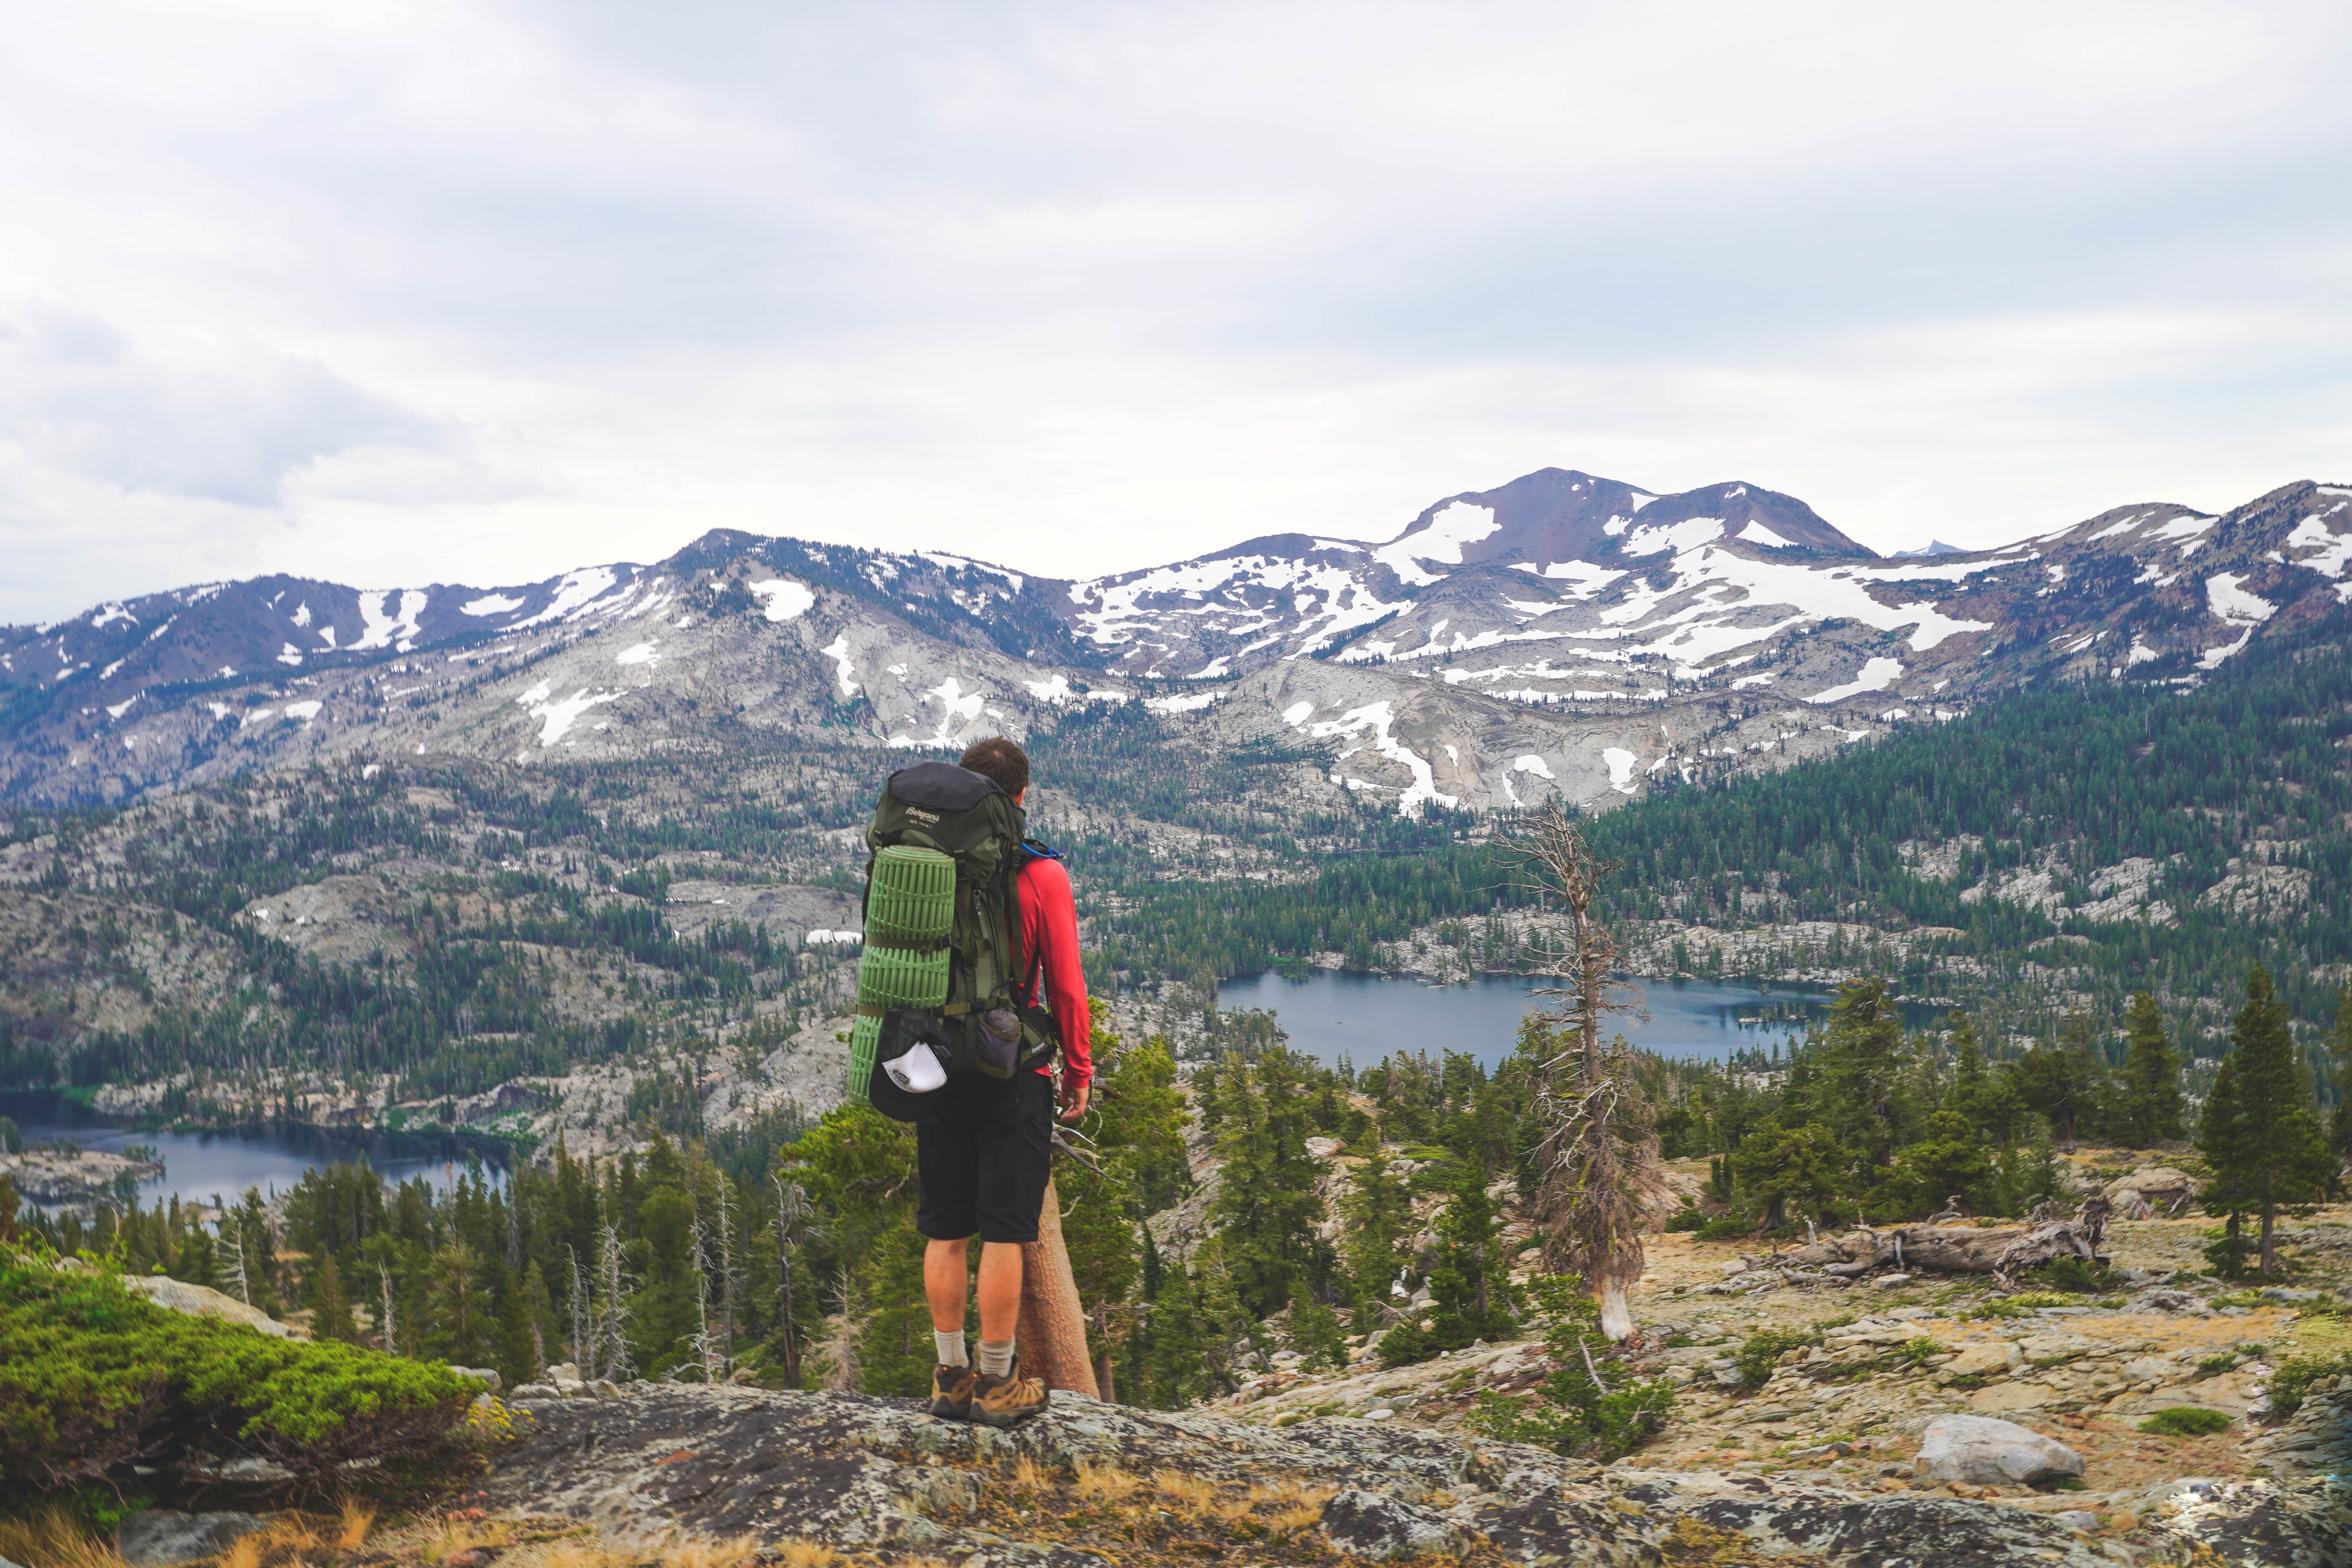 Backpacker looks out at sparse forests and snowy mountains in Desolation Wilderness